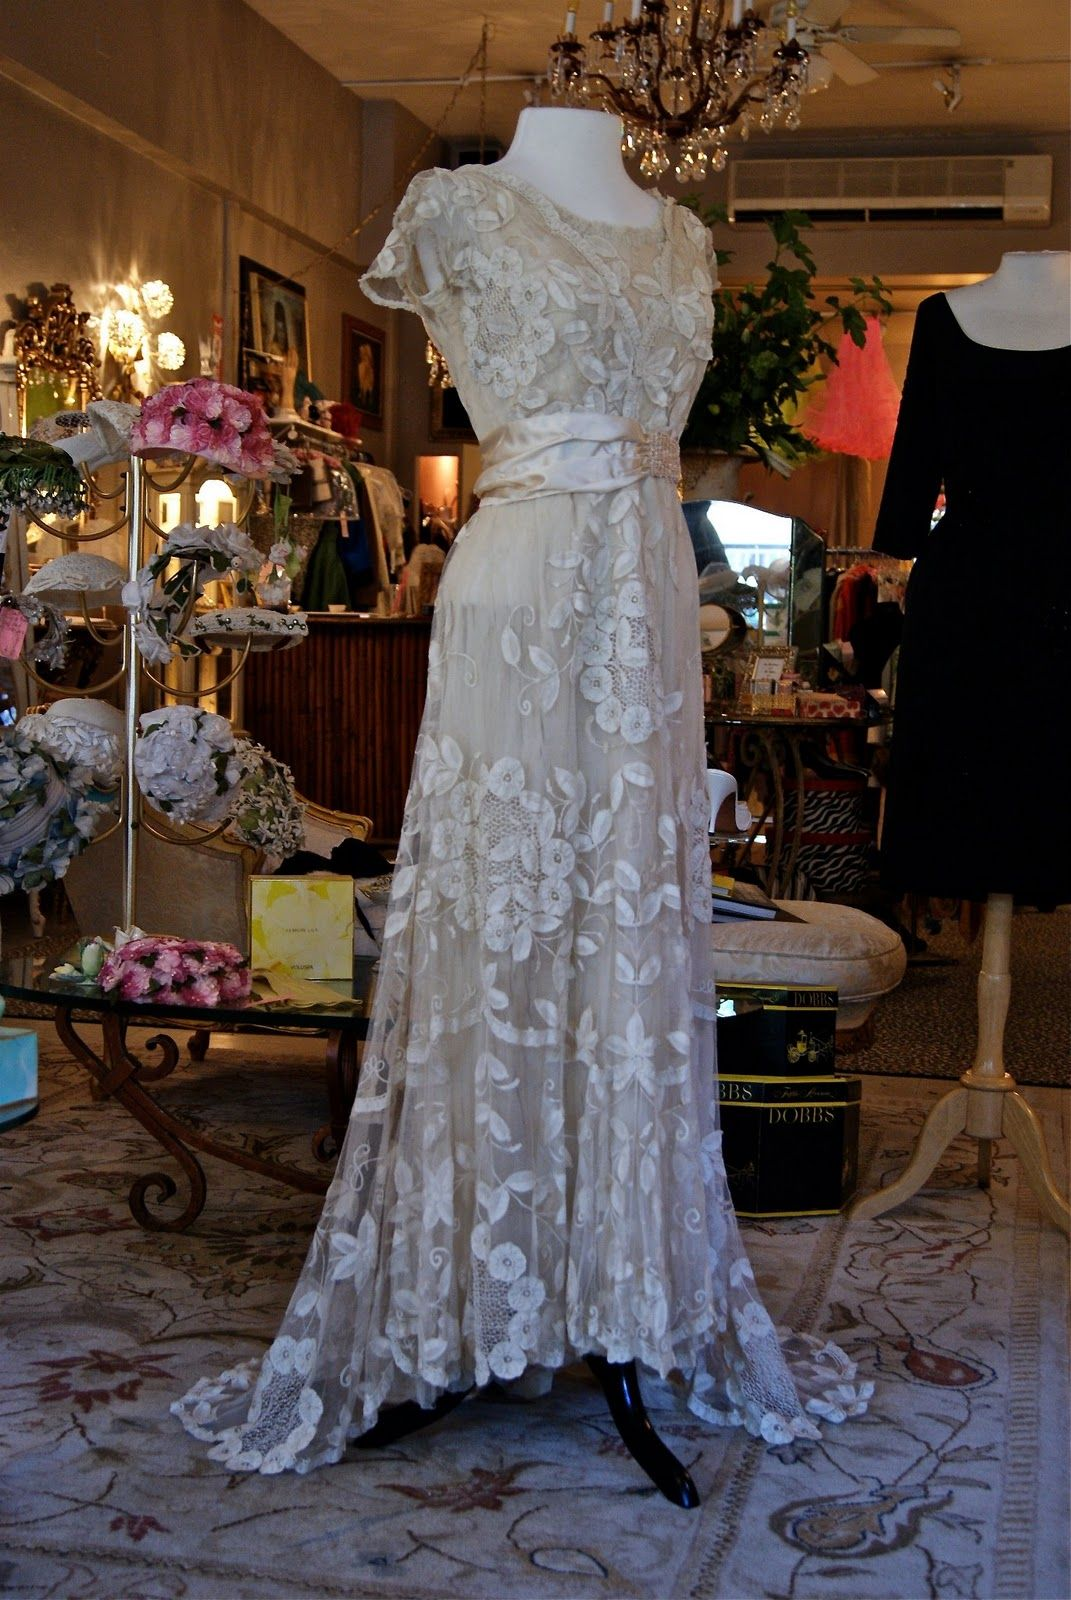 Shop For Vintage Clothing Vintage Dresses And Vintage Wedding Dresses In Portland Oregon At Por Wedding Gowns Lace Edwardian Fashion Wedding Dresses Vintage